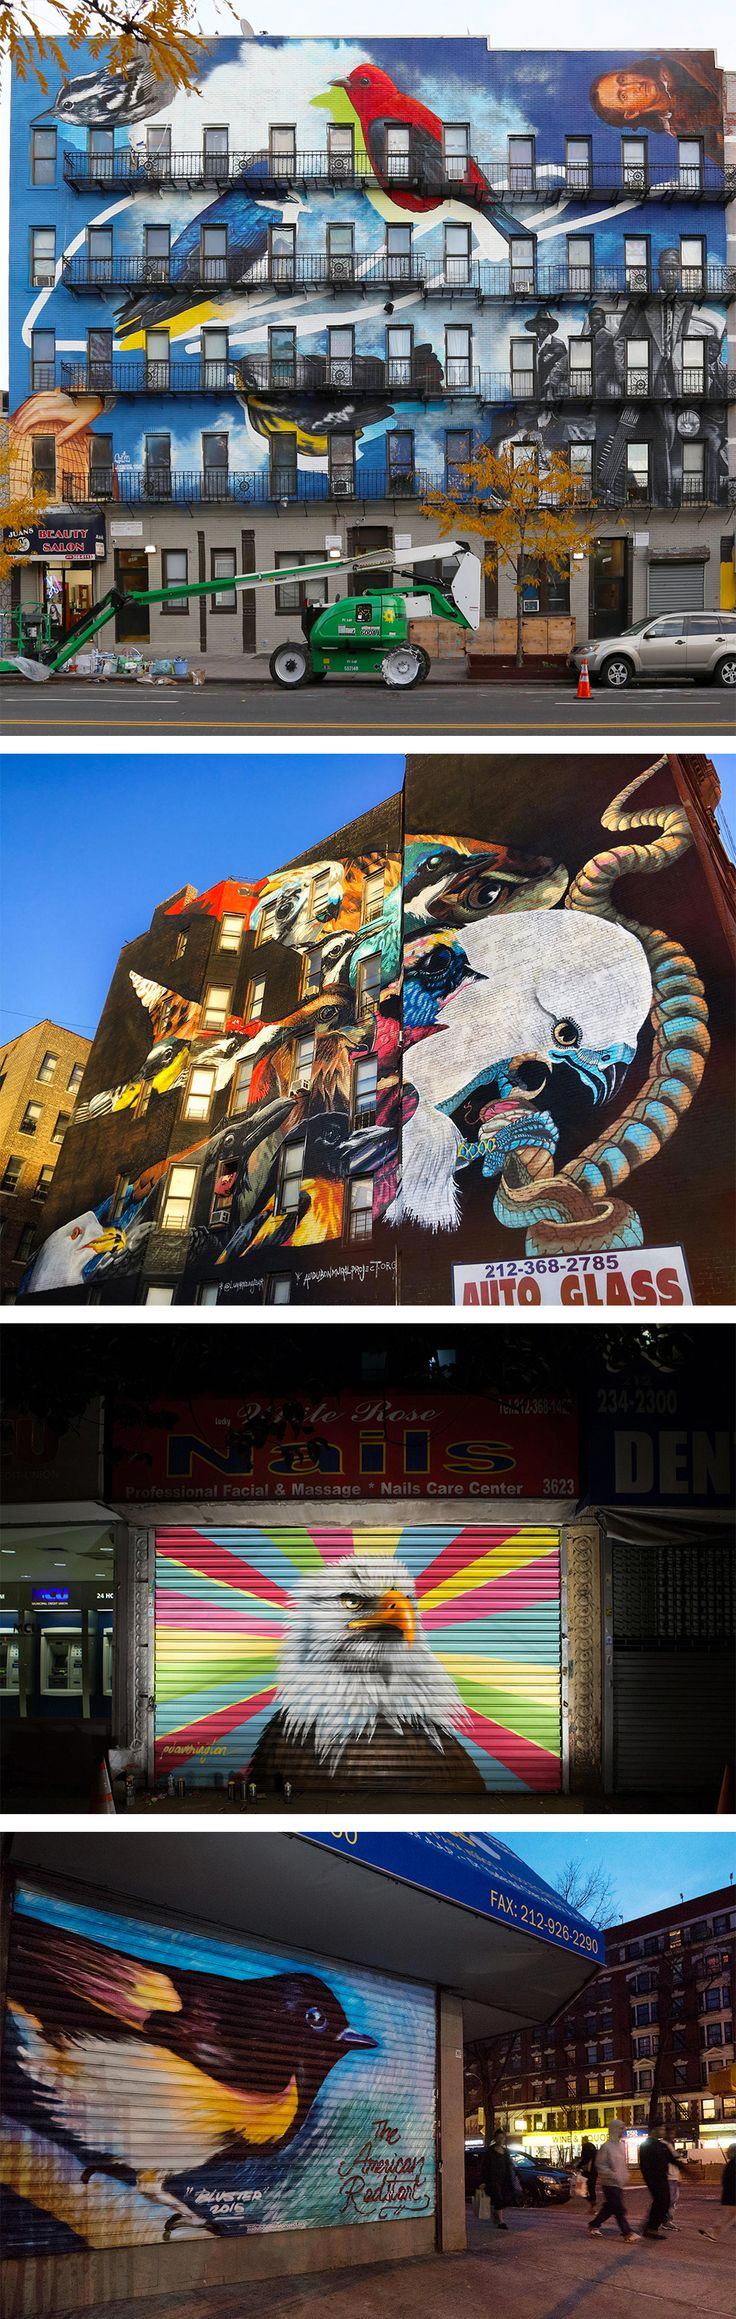 The Audubon Mural Project Attracts 314 Endangered Birds To